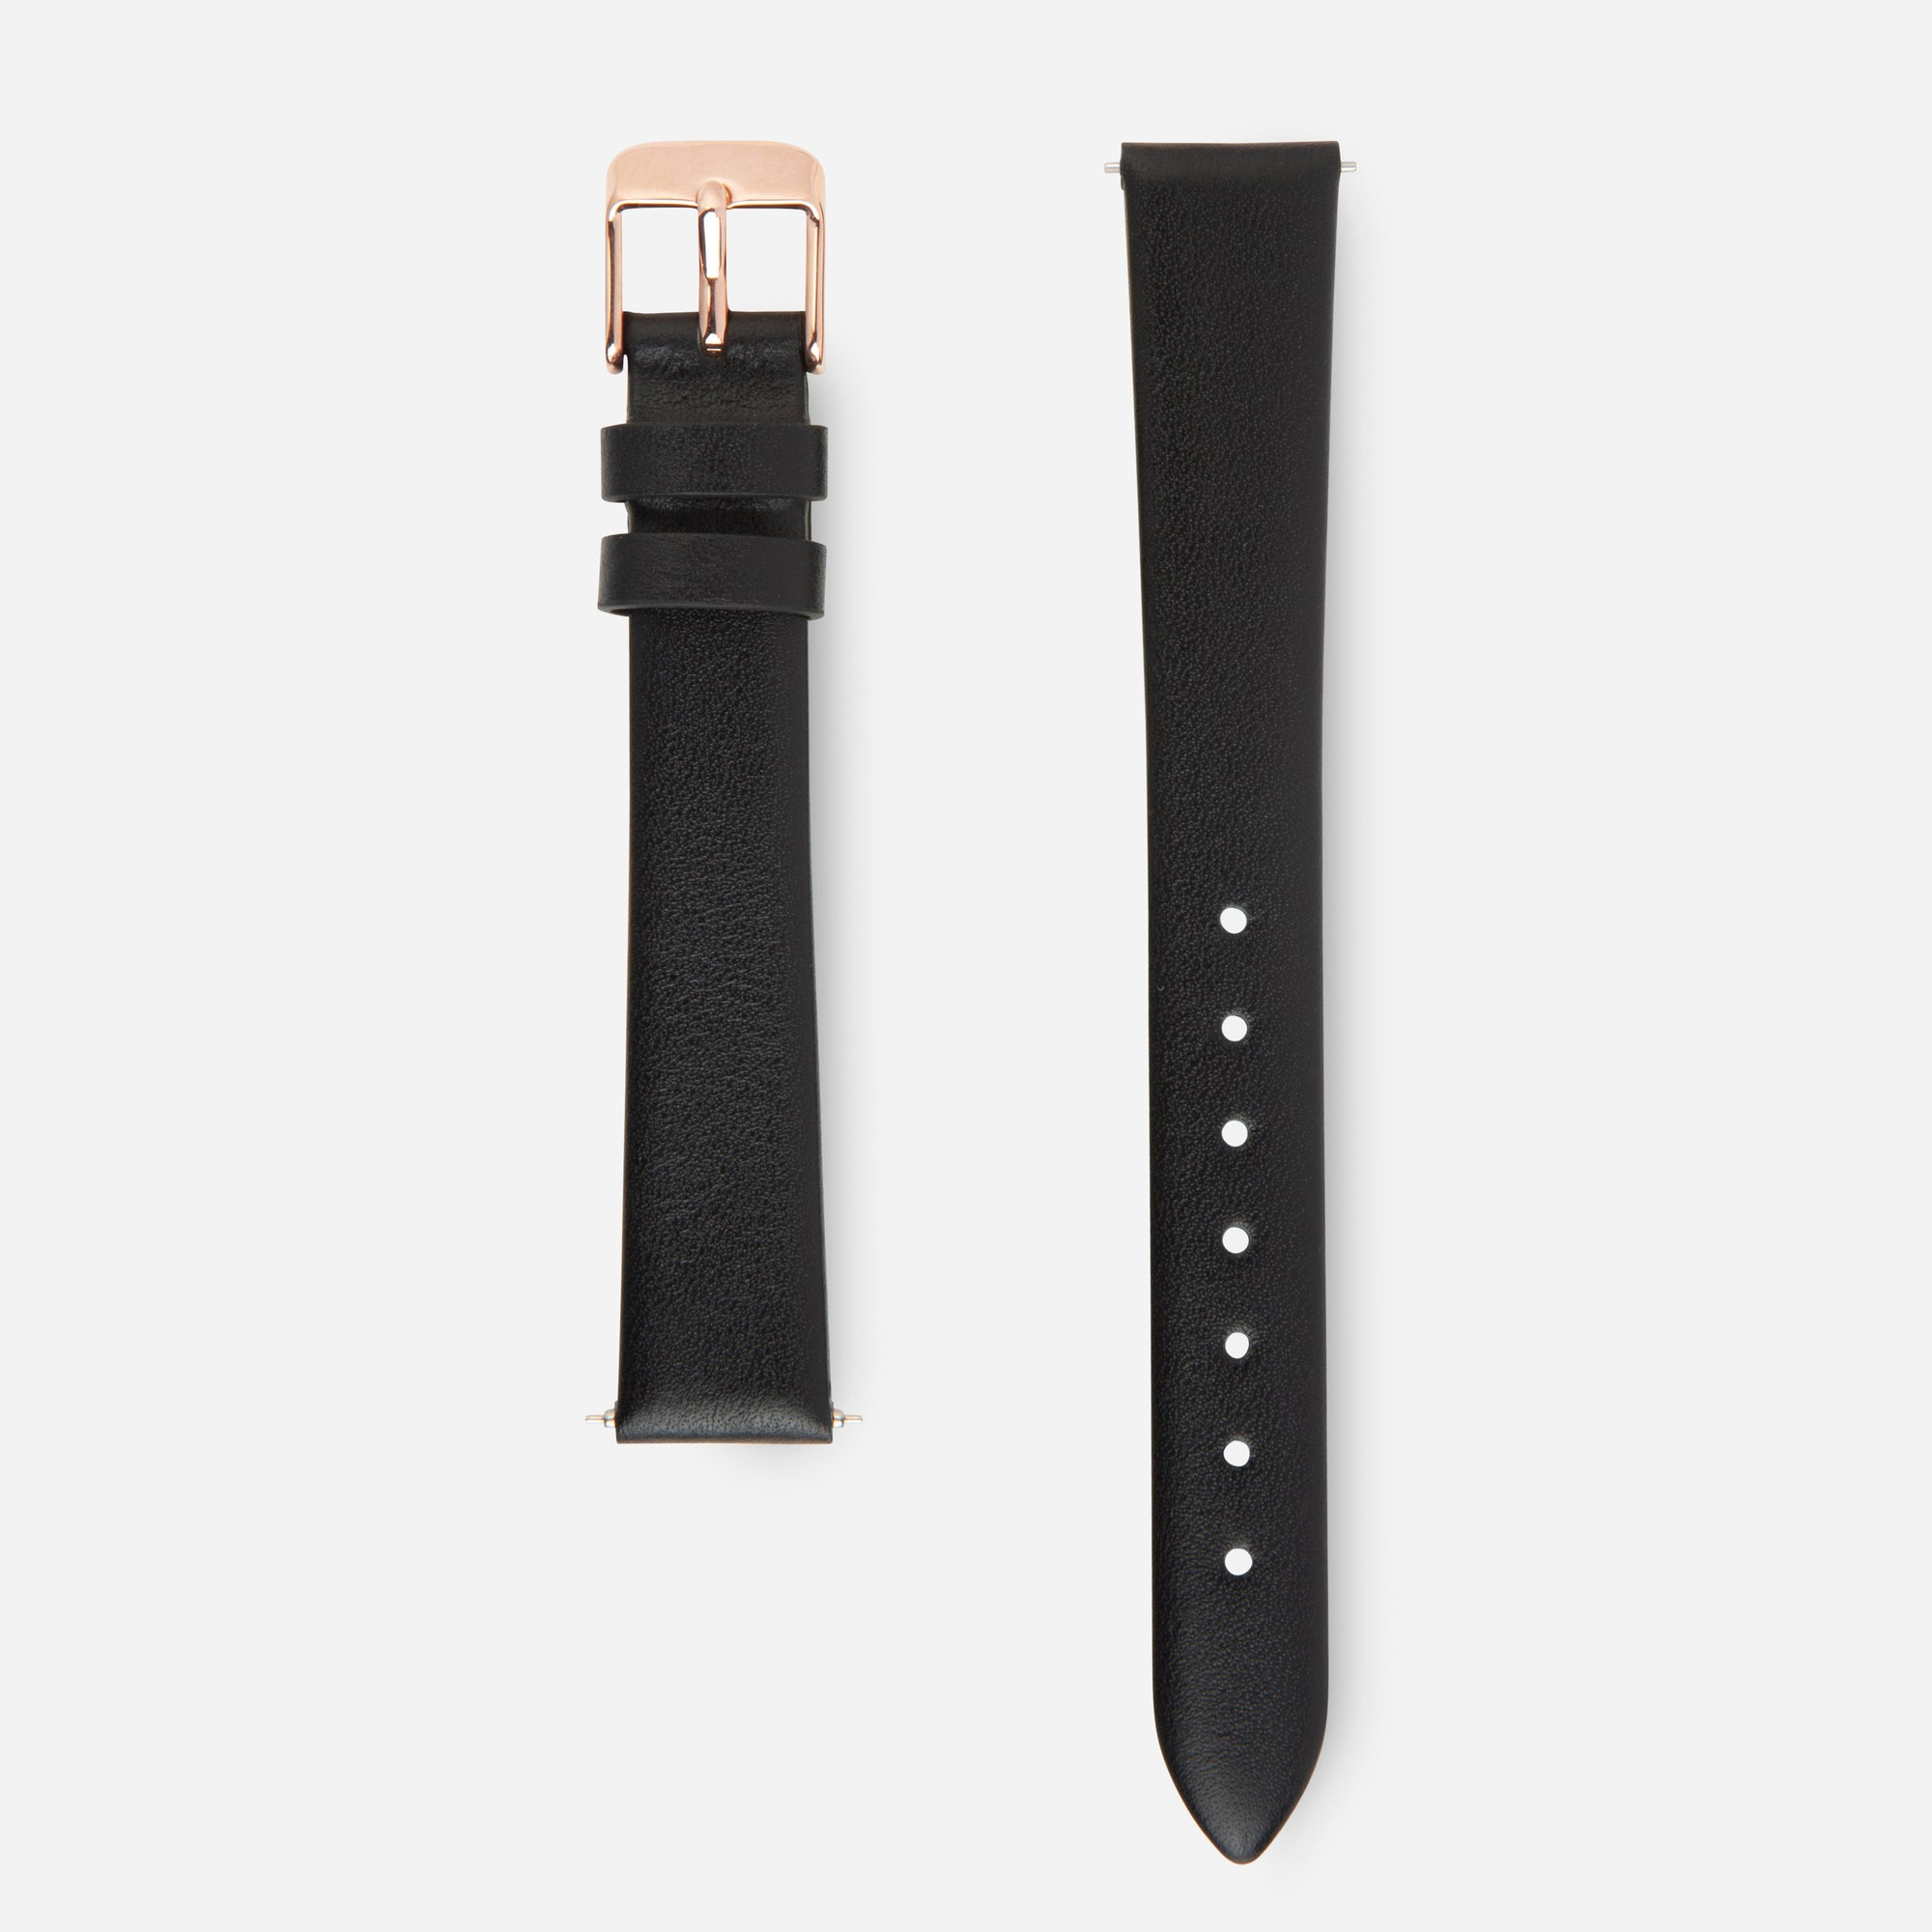 Black Rose Gold Strap - Genuine Leather or Vegan Leather 33mm